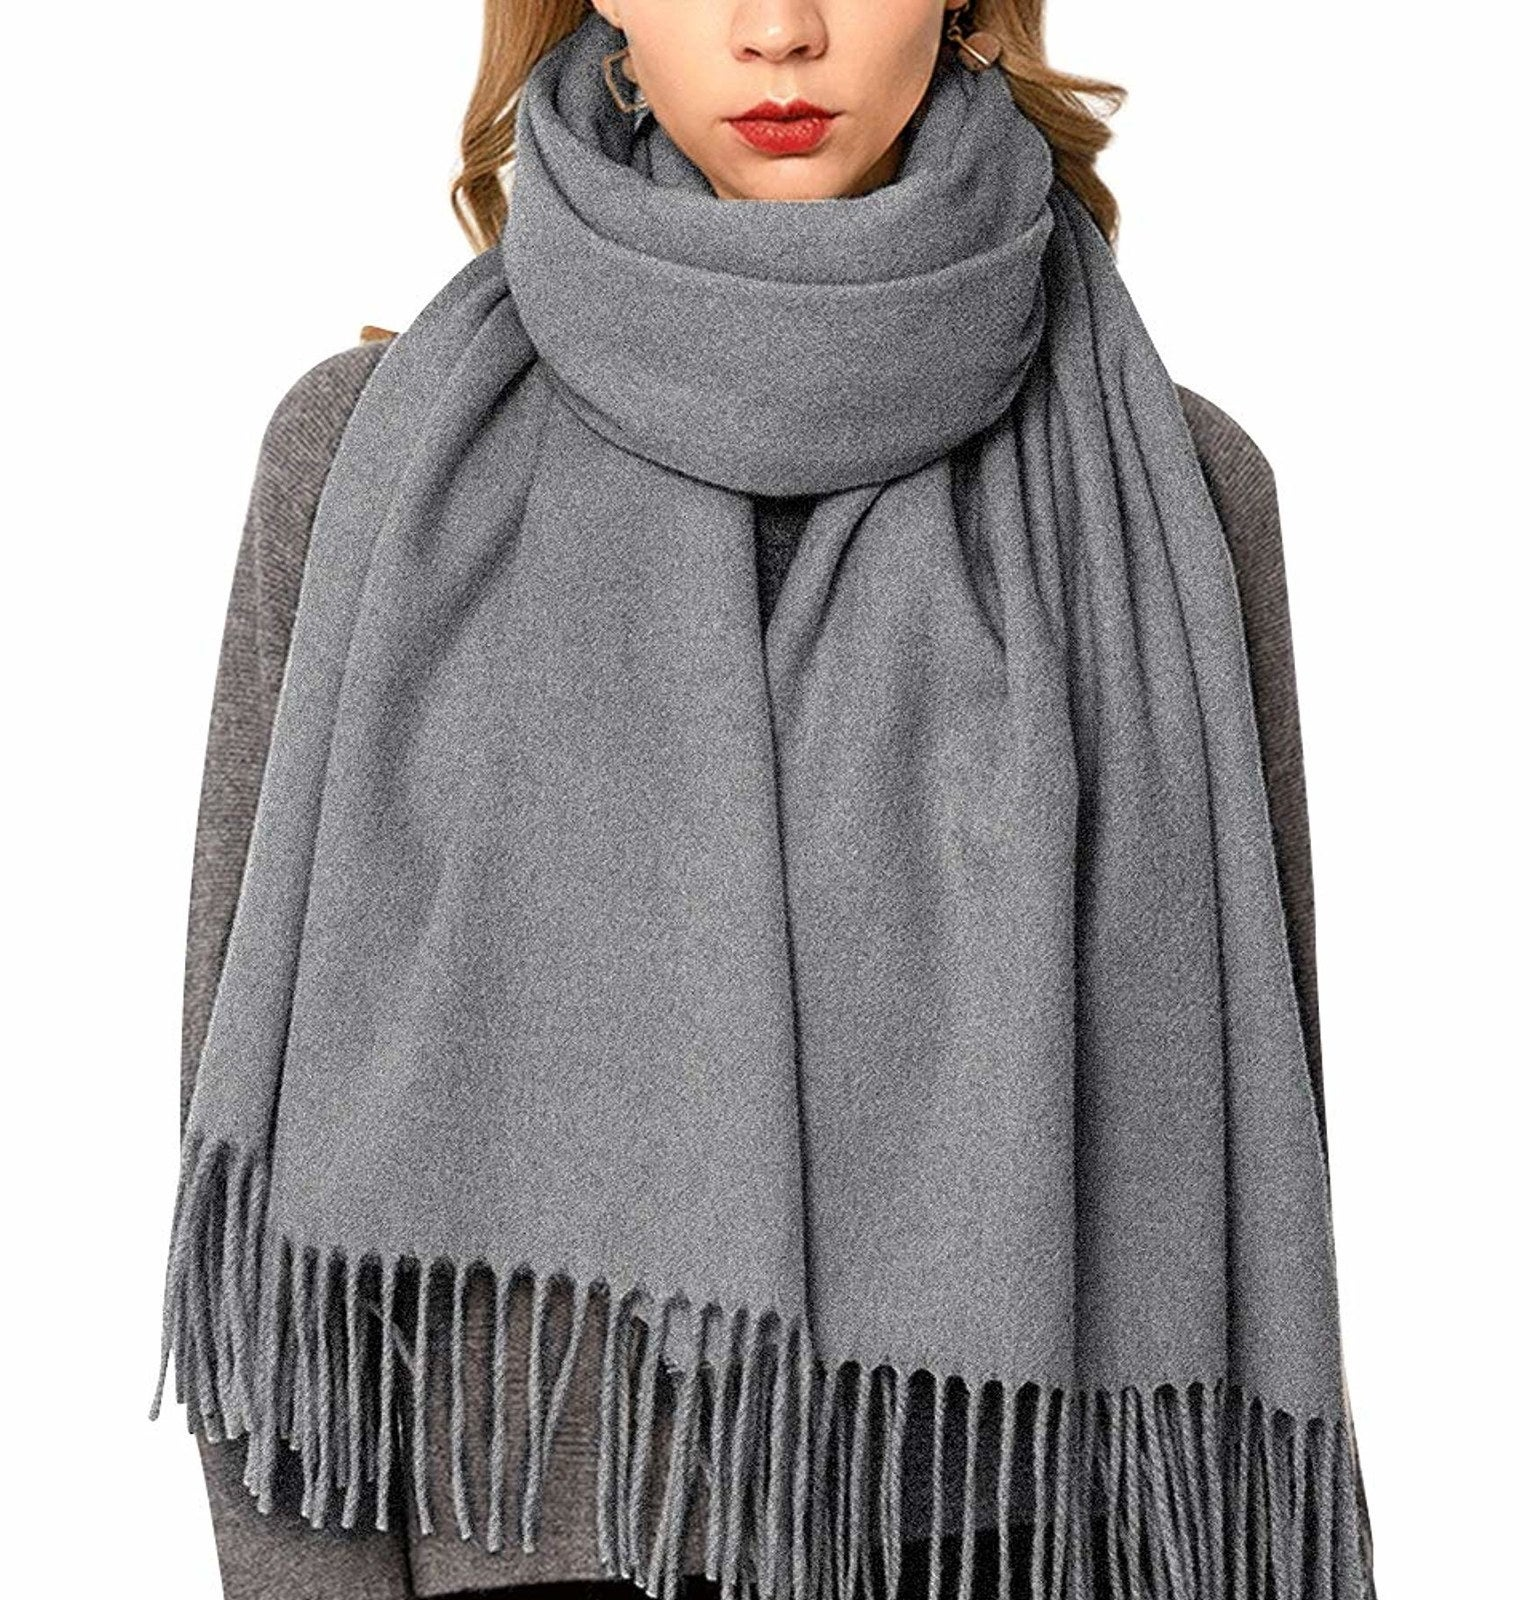 "Promising review: ""Extremely impressed with the high quality and great price of this scarf. It DOES NOT look cheap. I own an Acne Studios wool scarf ($260) and would say while this one is a bit lighter weight (still super warm and cozy) it is comparable in style, color, and quality to my Acne scarf. I would definitely buy again — both for myself and as a gift."" —NatalieGet it from Amazon for $16.98 (available in 12 colors)."